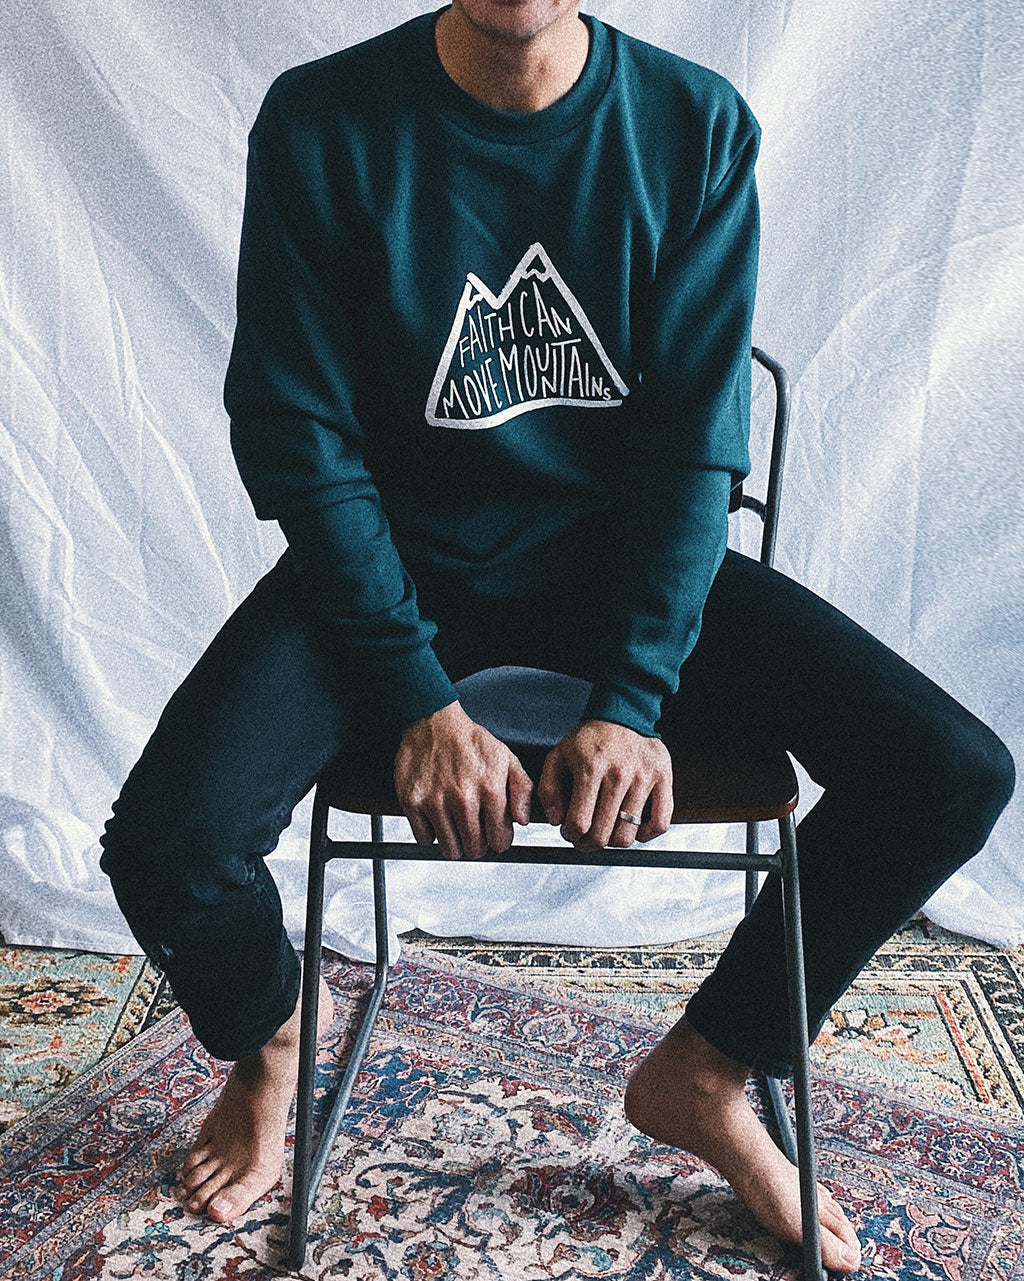 Faith Moves Mountains Unisex Pullover Crewneck Sweater